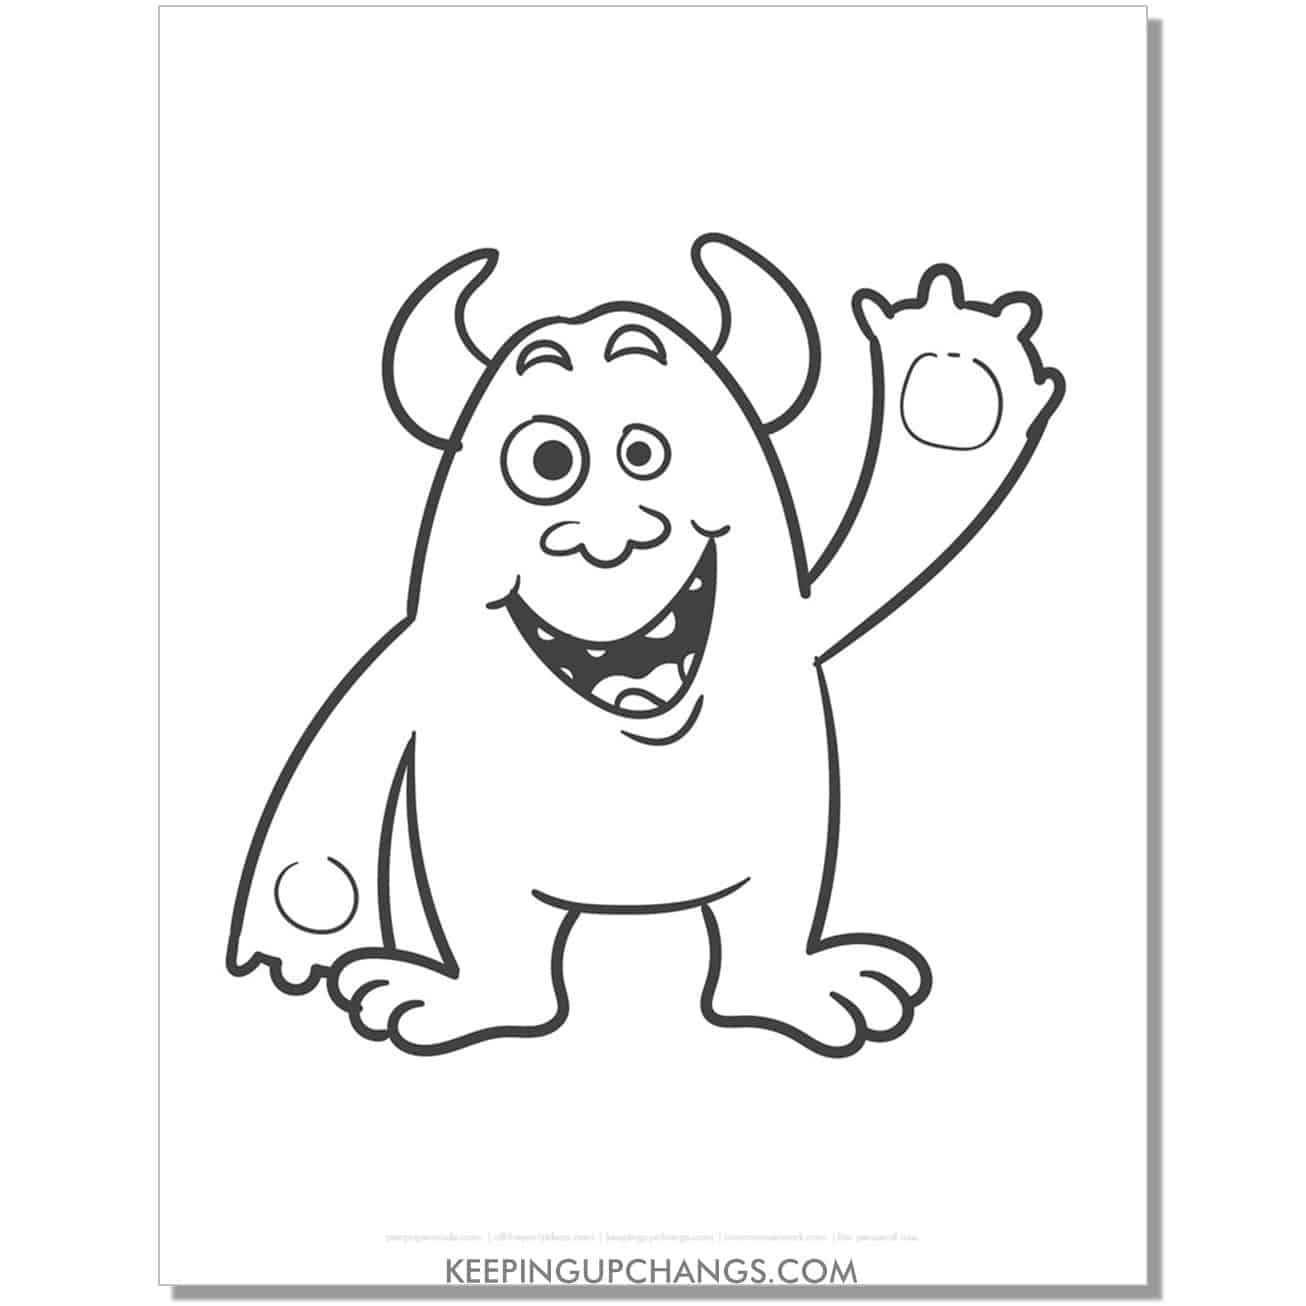 free friendly, waving monster with horns coloring page.